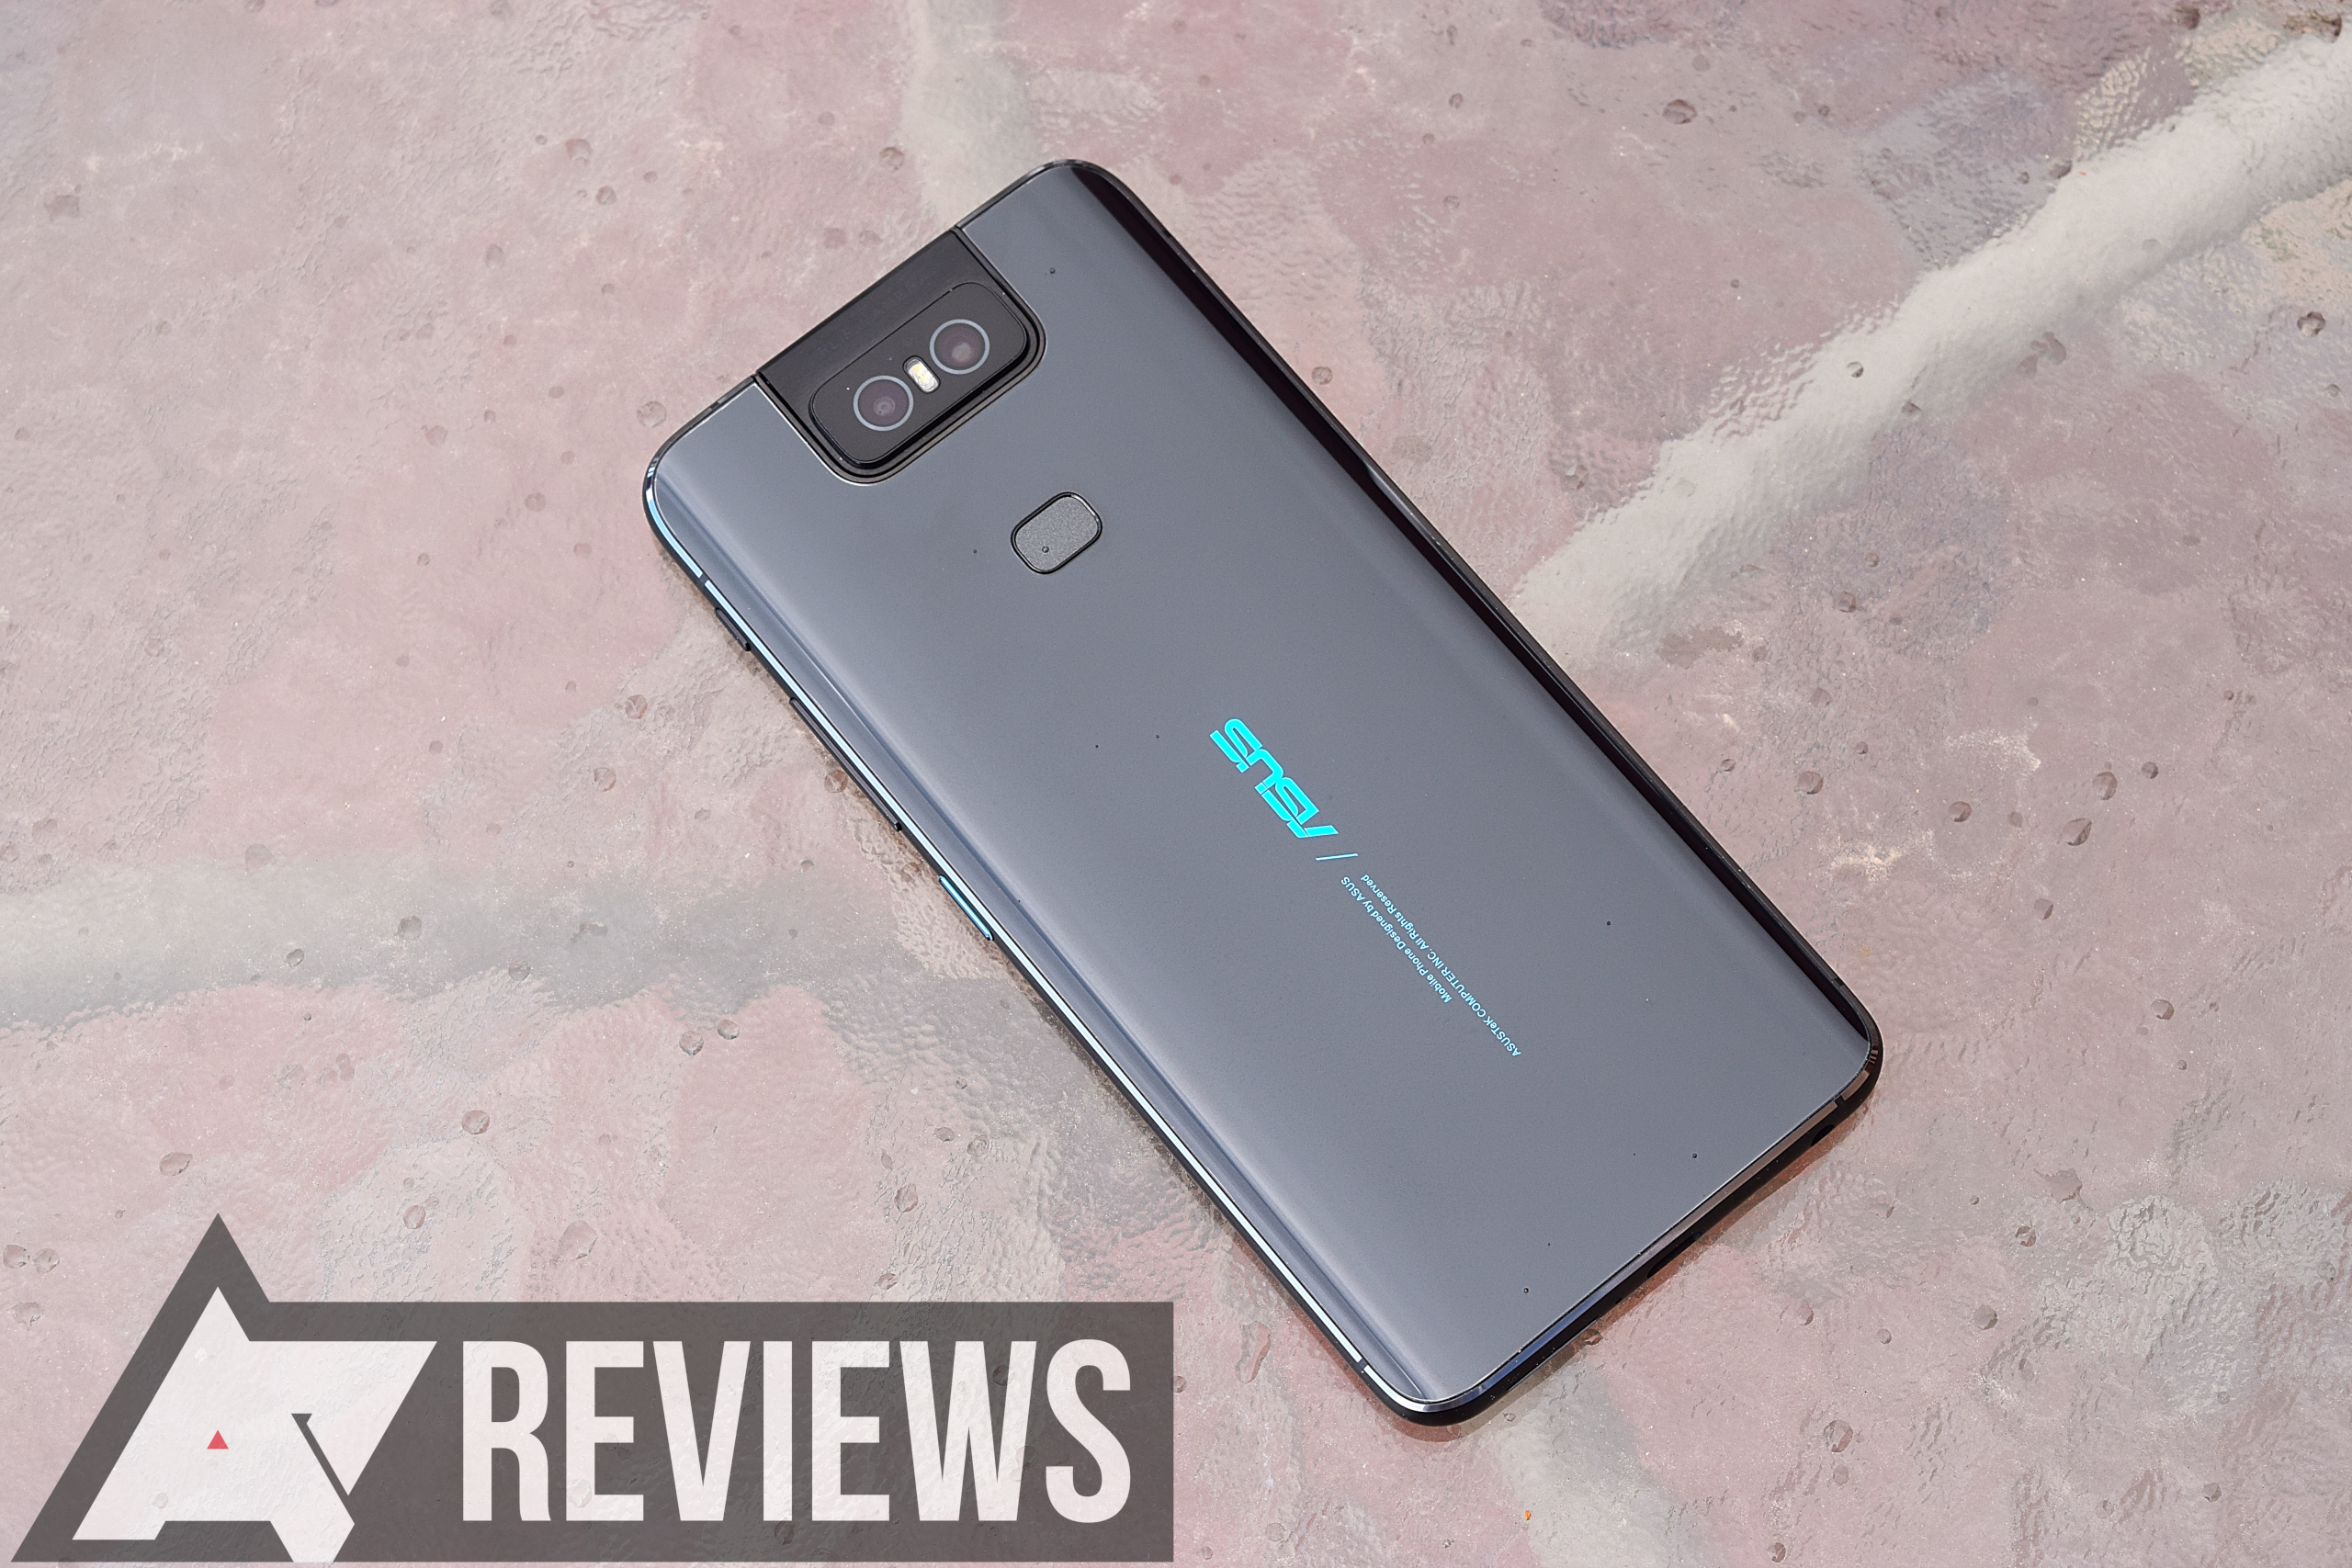 ASUS Zenfone 6 review: A surprise flagship at a surprisingly